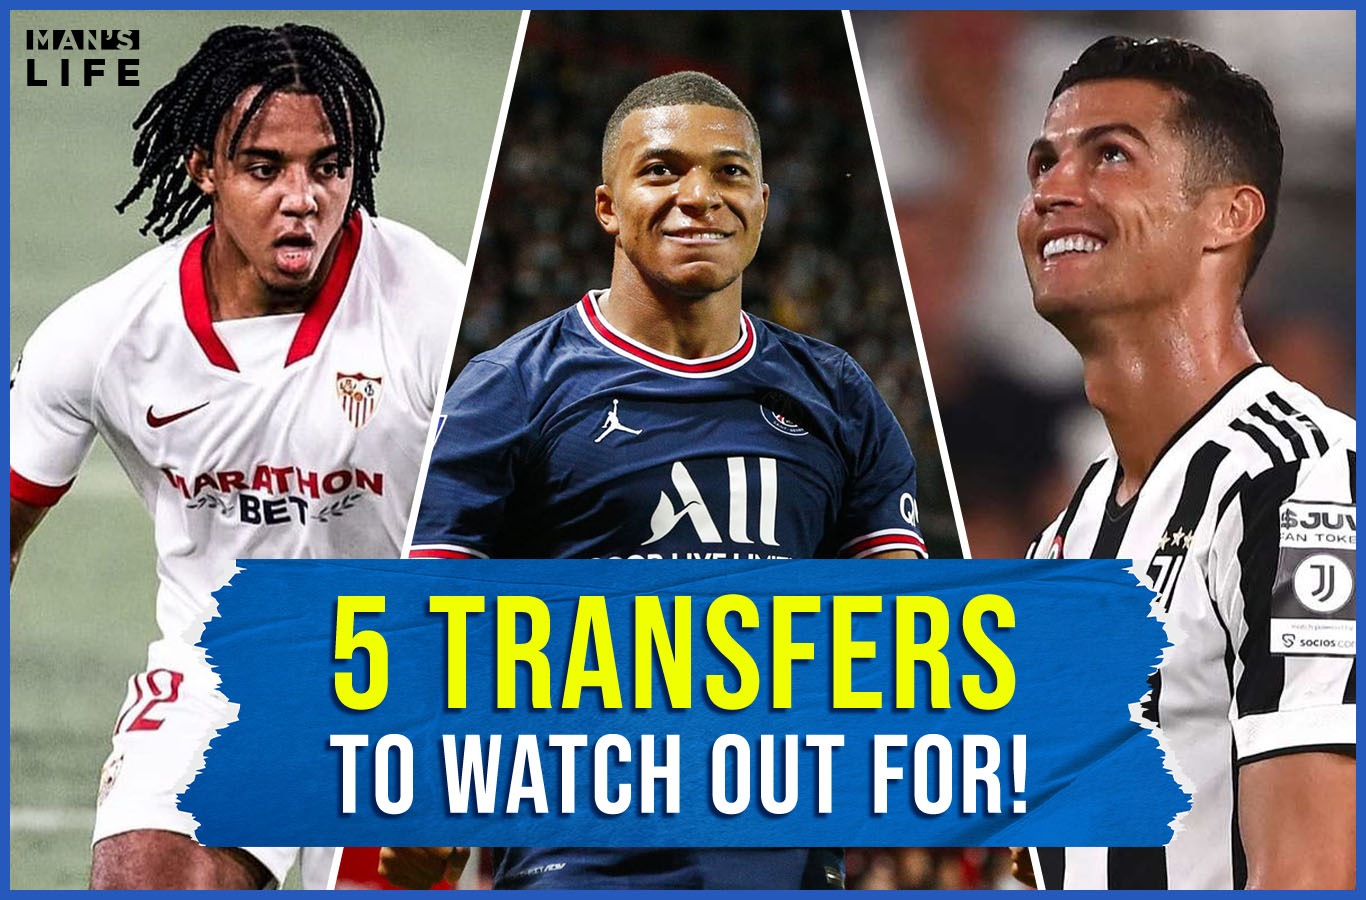 5 transfers to watch out for